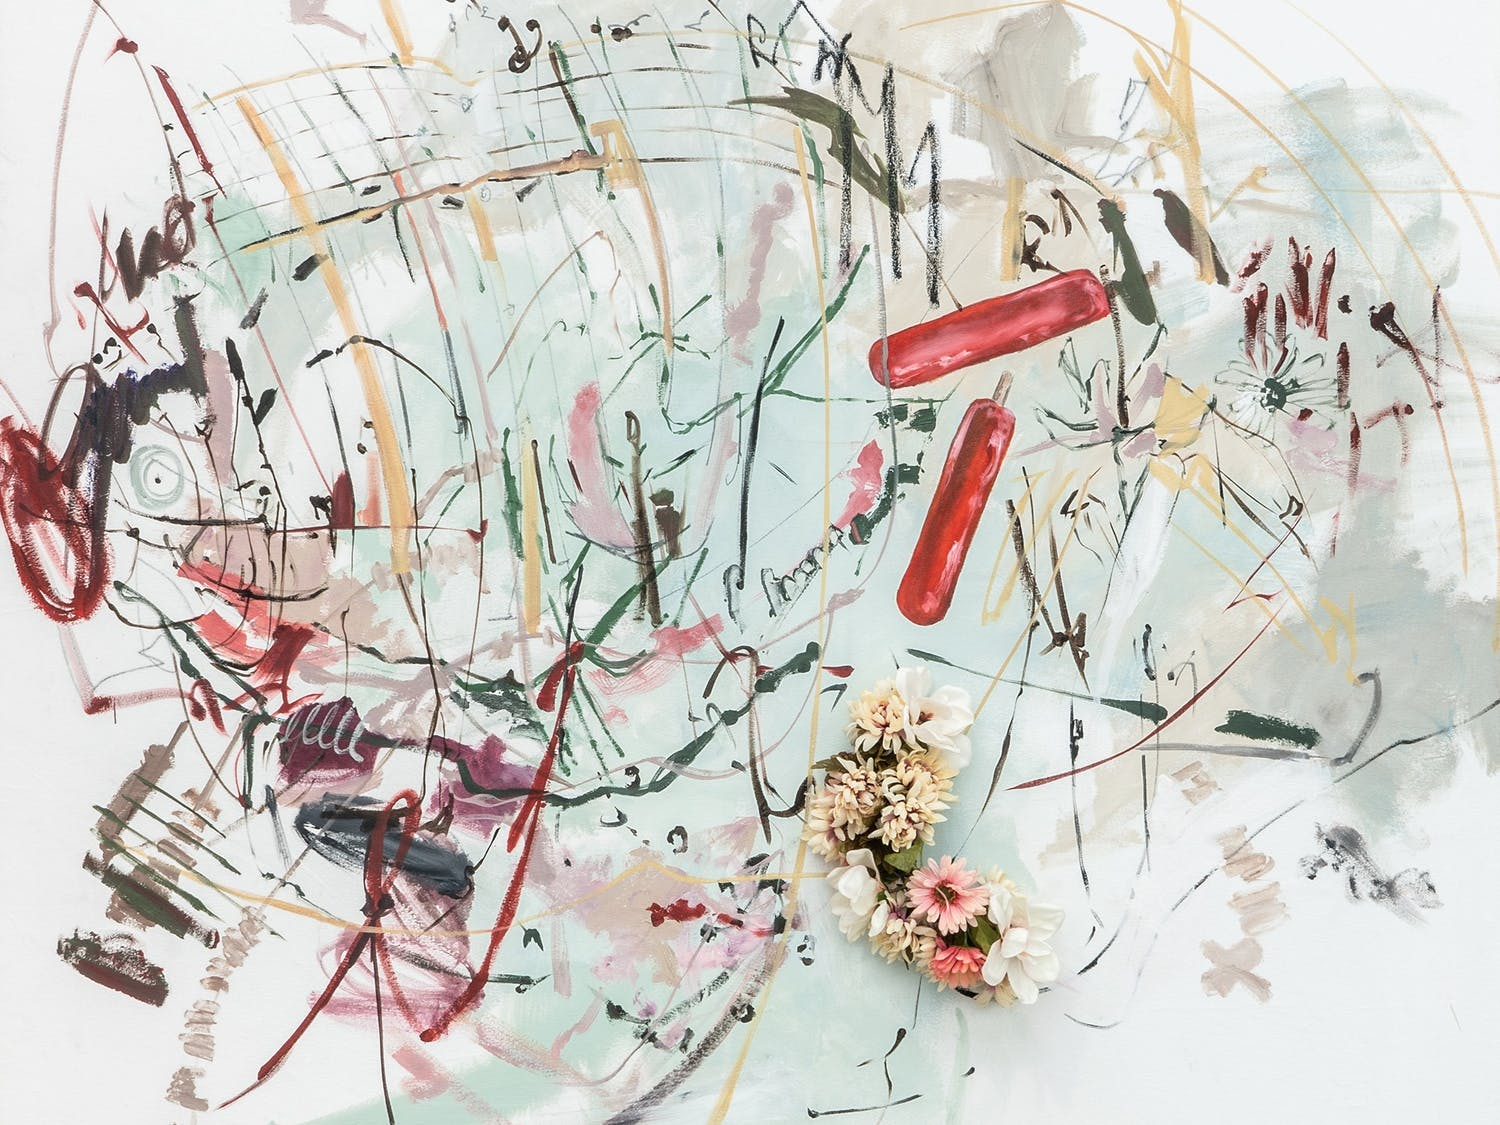 Carmen Neely's piece 'In an alternate reality', 2018, oil on canvas, faux flower crown, 81 x 63 inches. Photo courtesy of Carmen Neely and Jane Lombard Gallery.